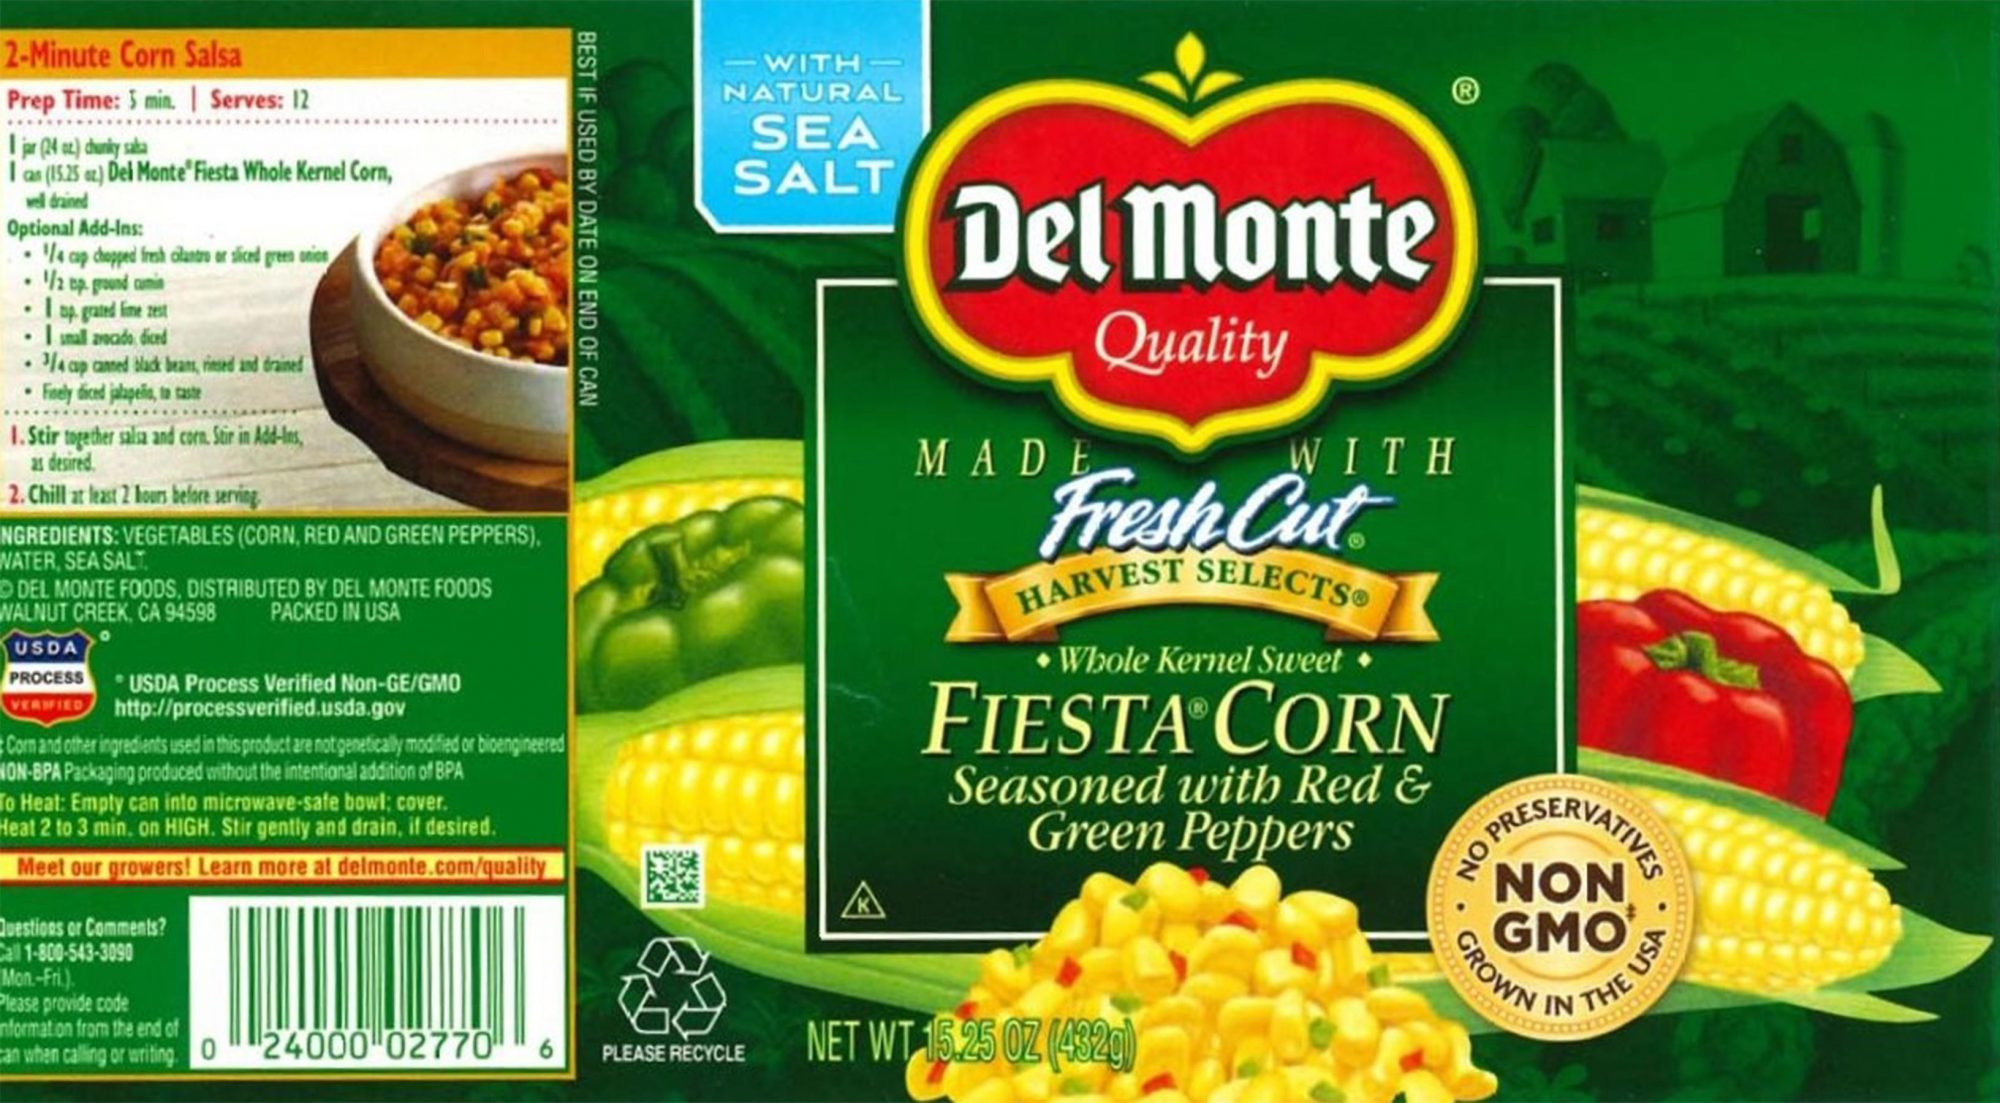 Del Monte Corn Cans Recalled Due to Risk of 'Life-Threatening Illness'